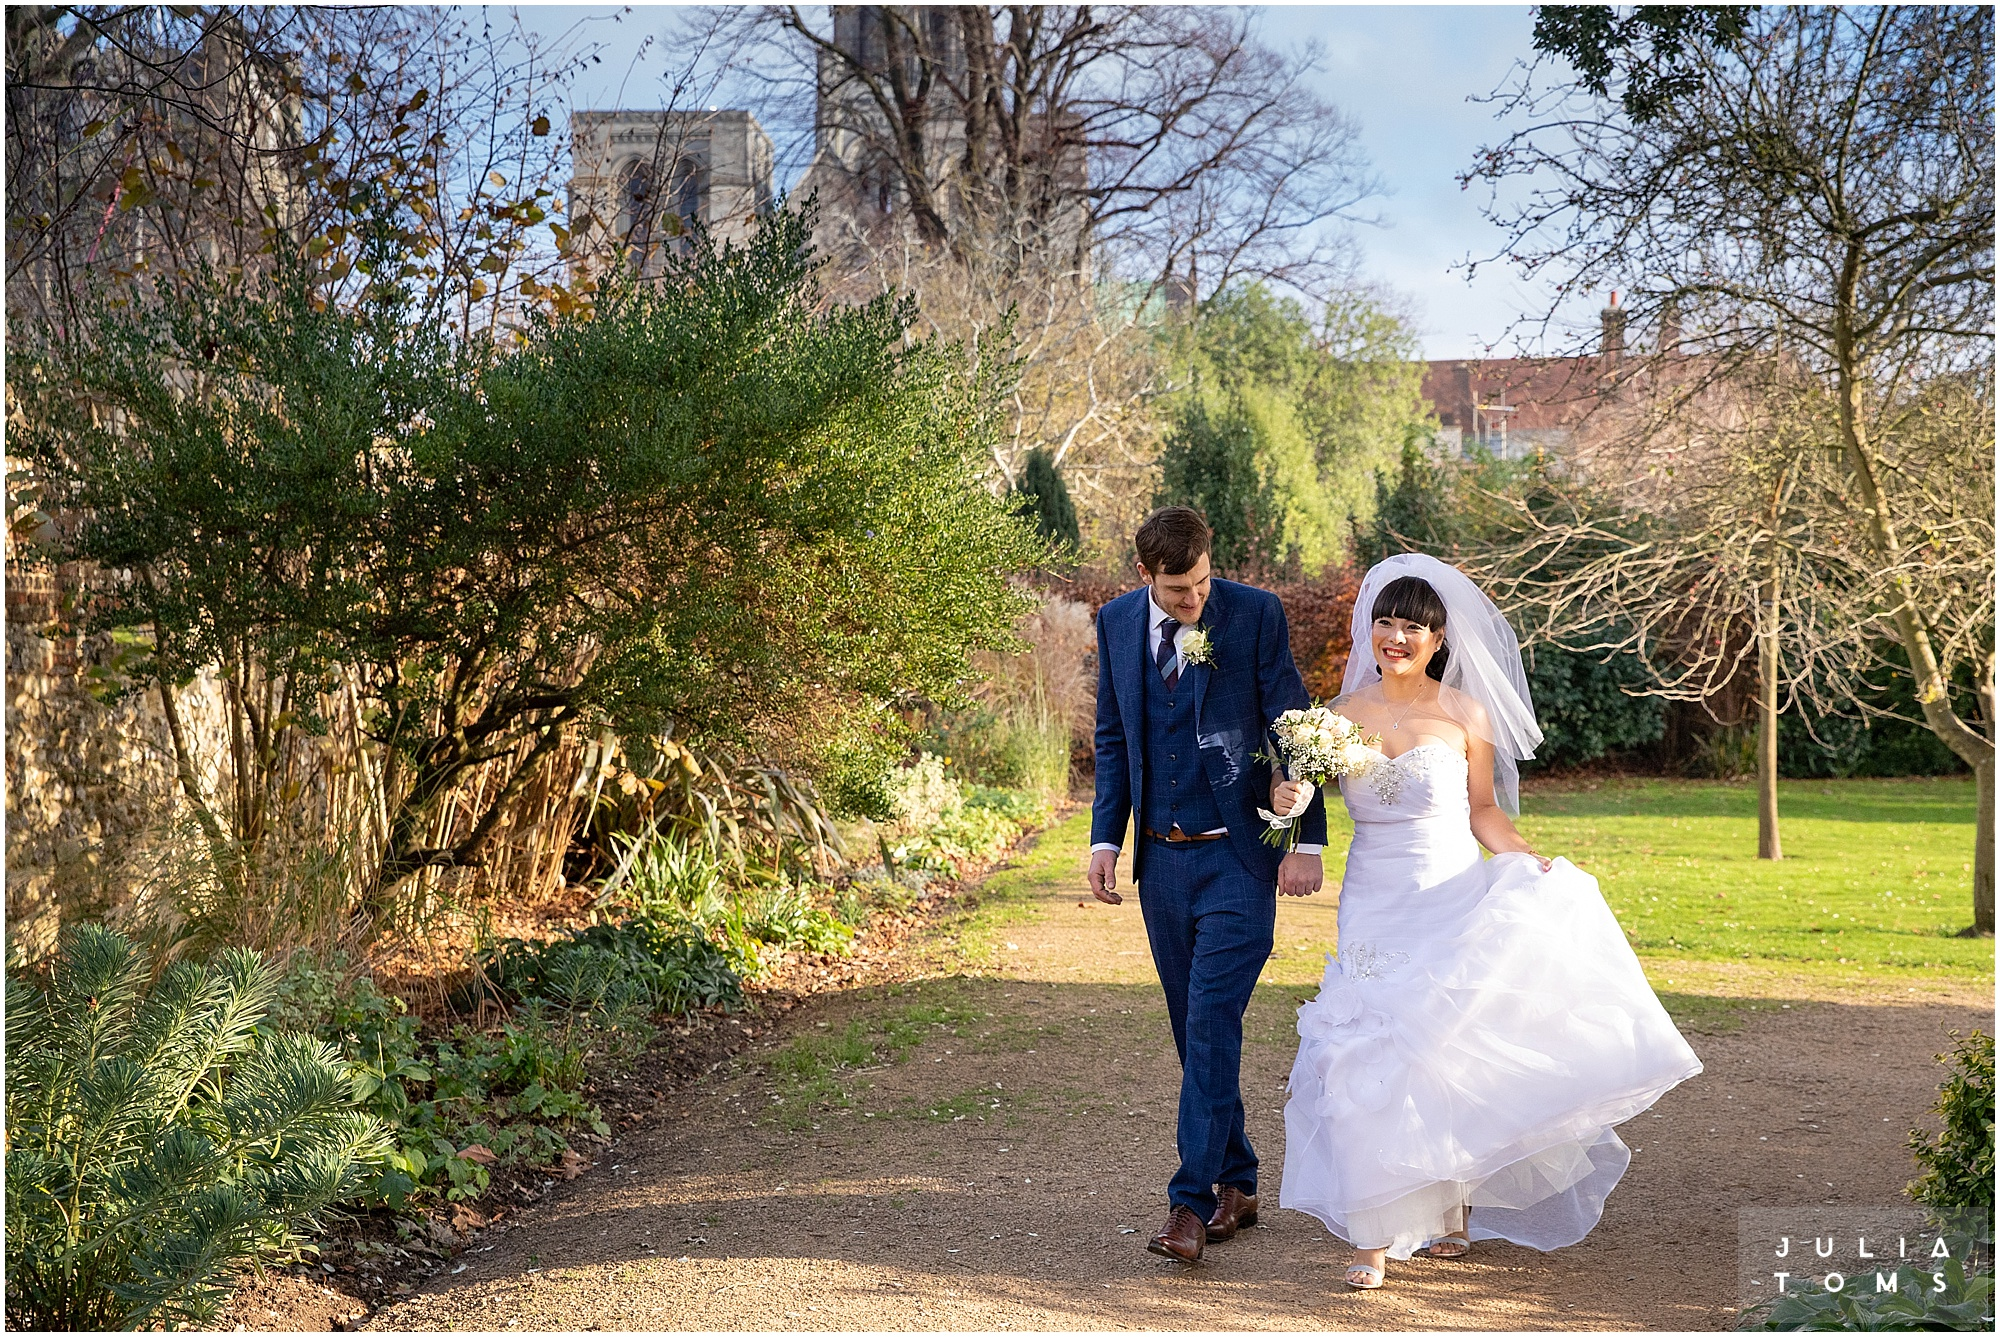 chichester_wedding_photographer_juliatoms_006.jpg